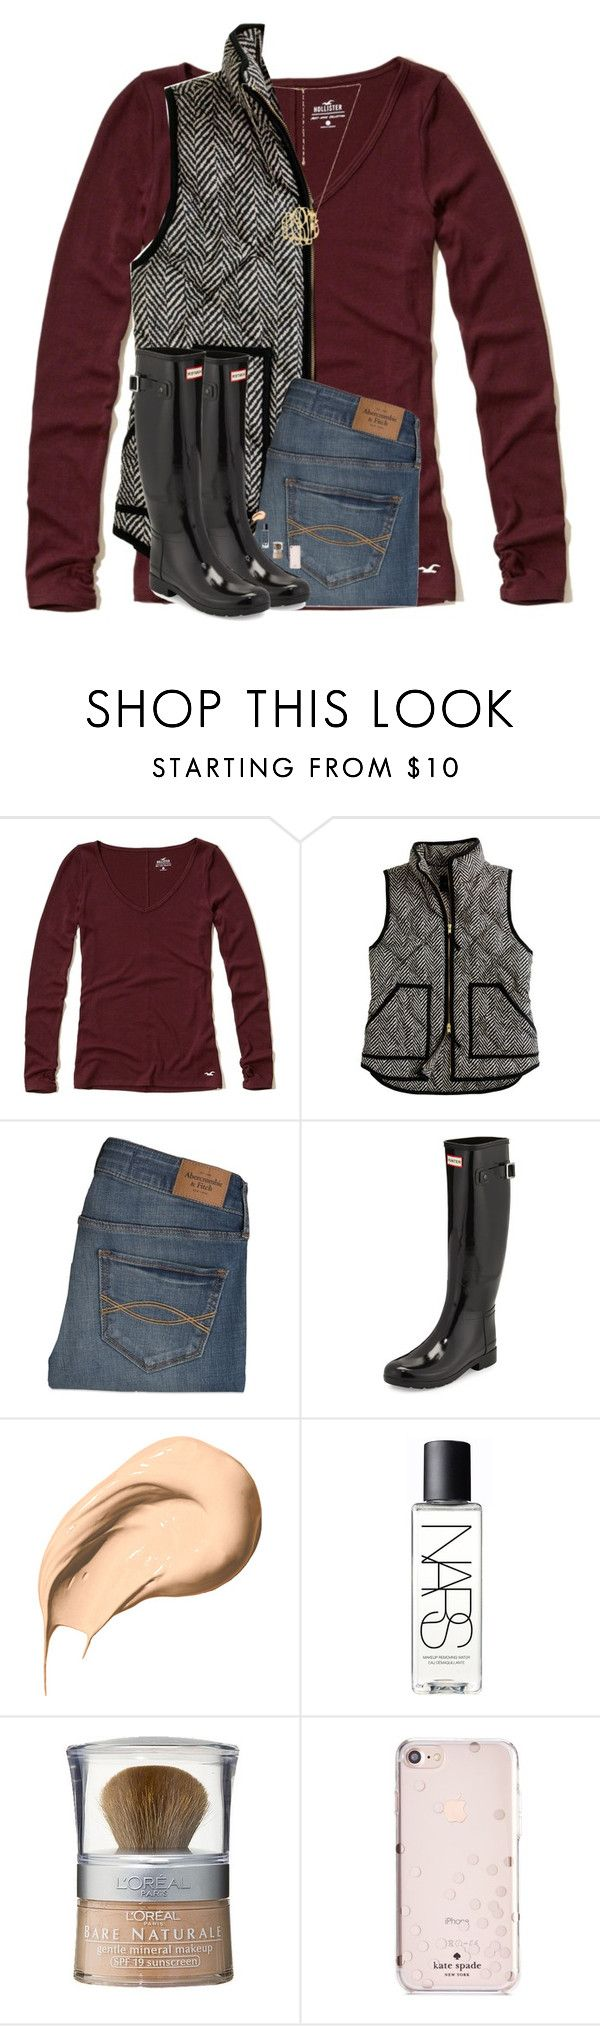 """""""This is really bad"""" by hgw8503 ❤ liked on Polyvore featuring Hollister Co., J.Crew, Abercrombie & Fitch, Hunter, Bobbi Brown Cosmetics, NARS Cosmetics, L'Oréal Paris and Kate Spade"""